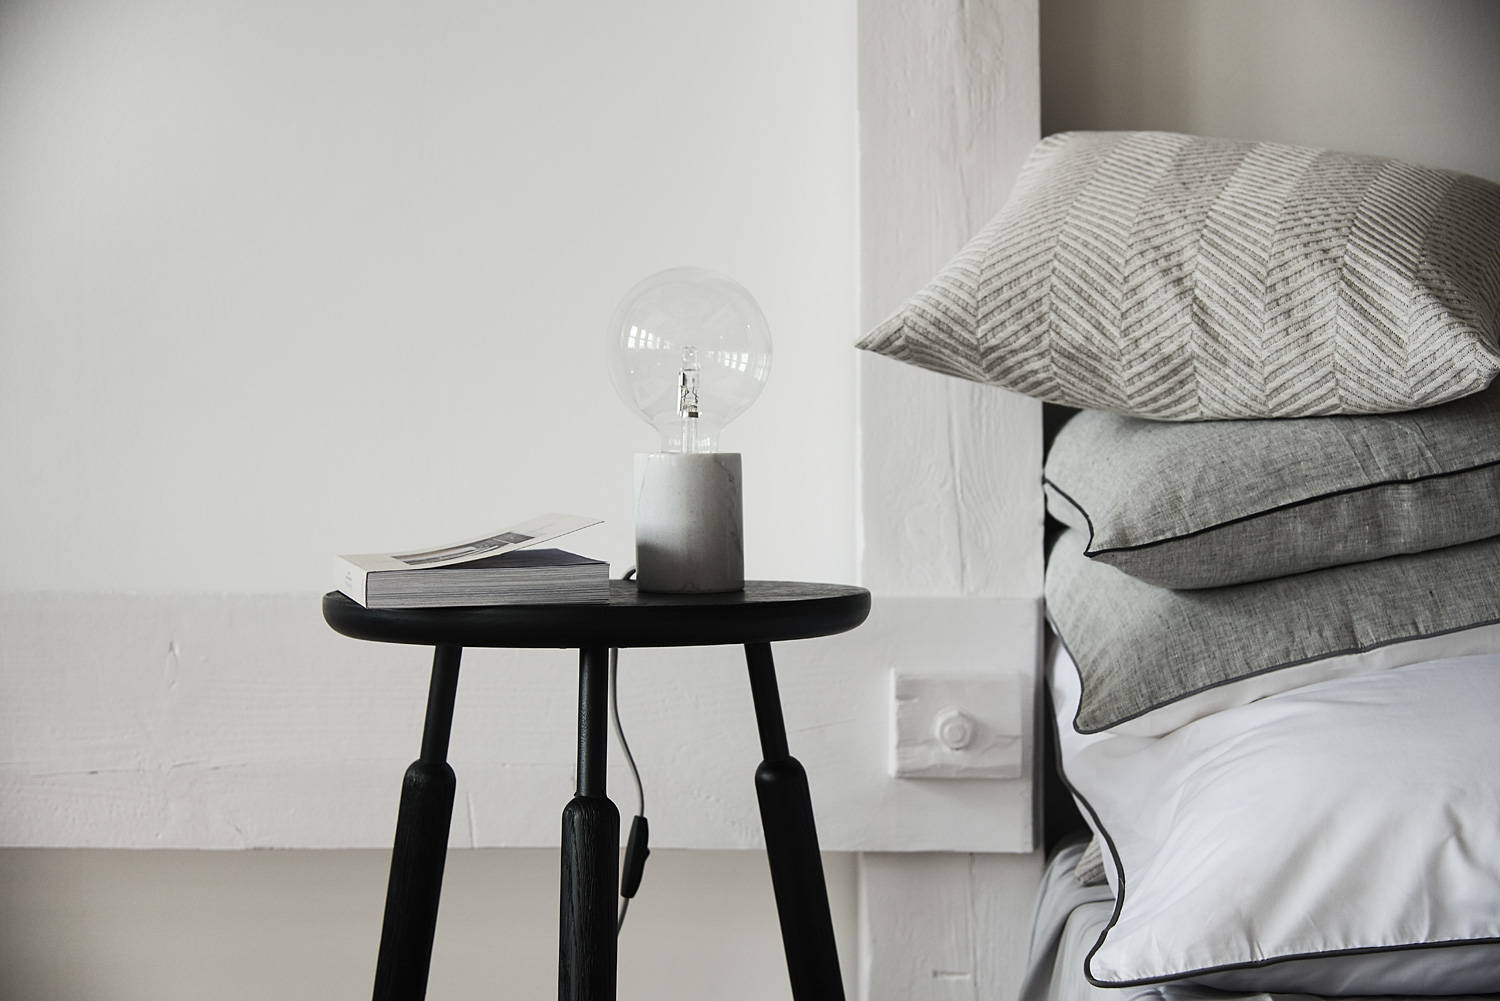 Lagom style interior decor with black side table, edison bulb table lamp and grey scatter cushions